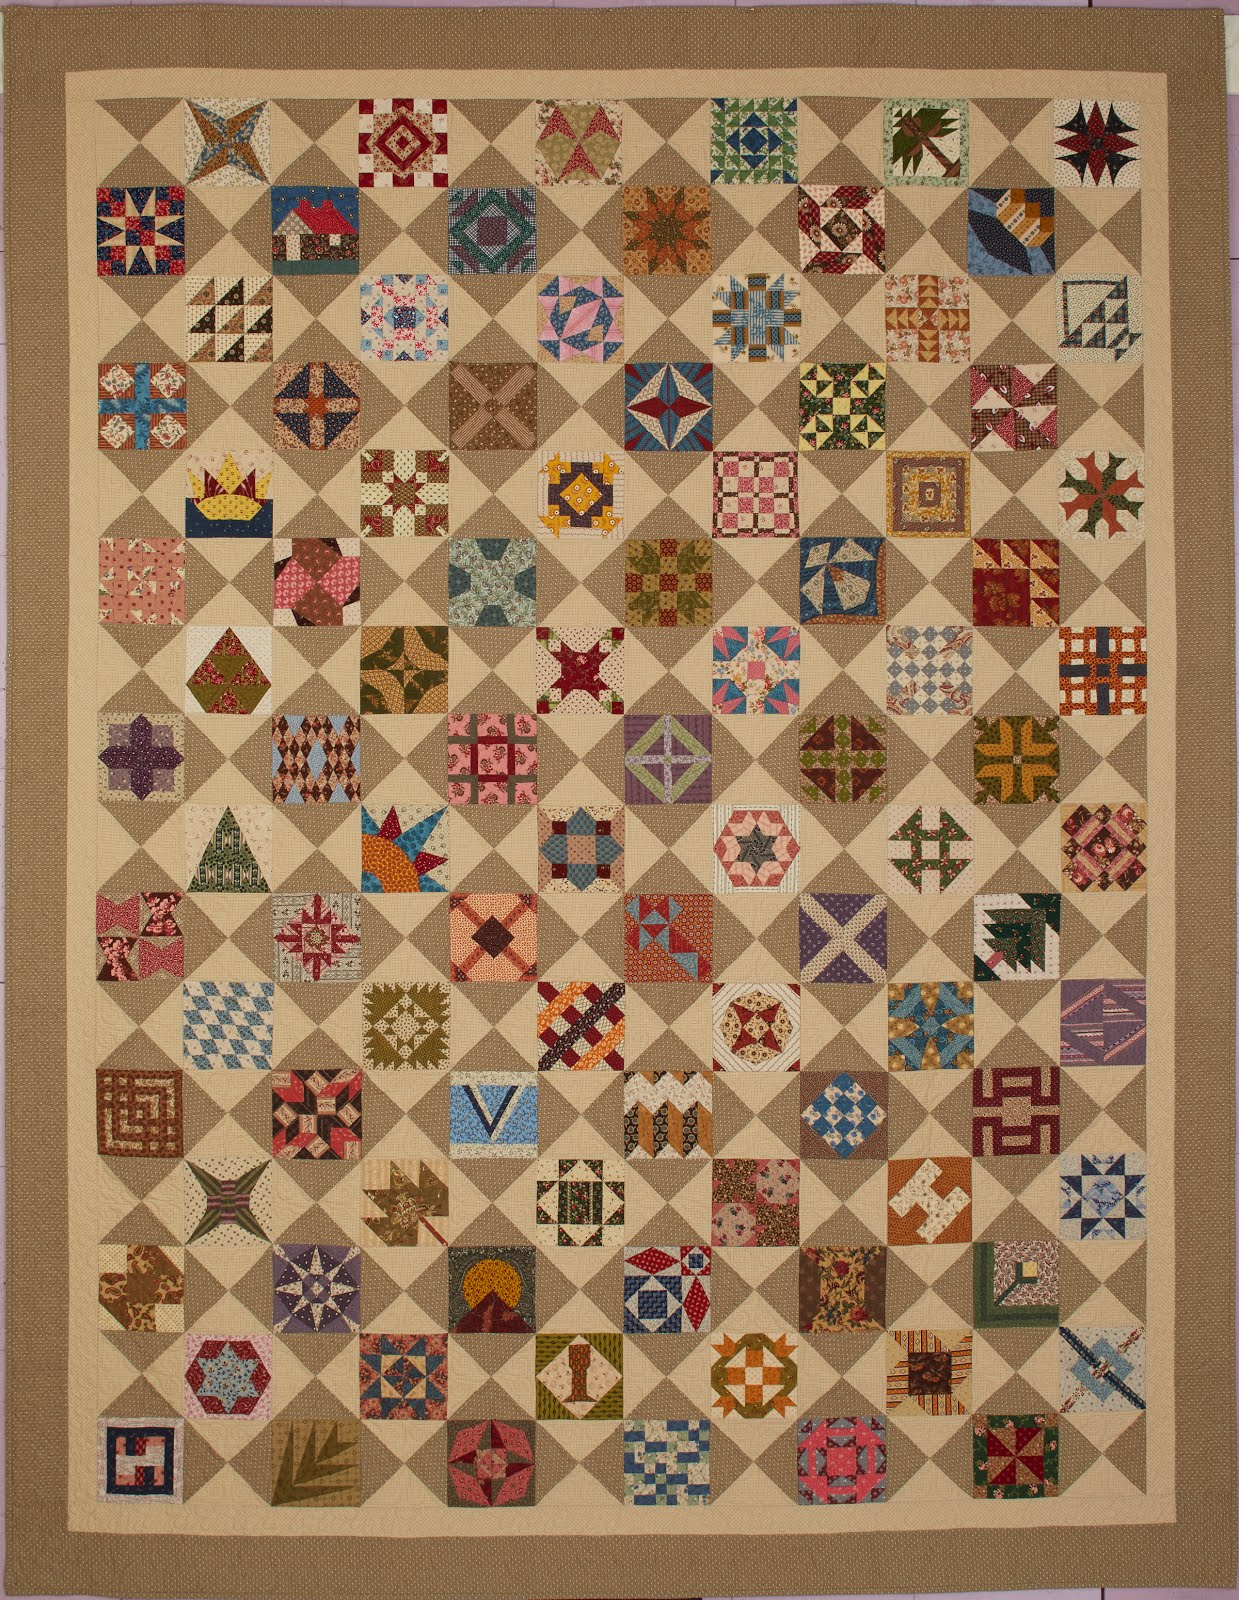 THE BIBLE QUILT